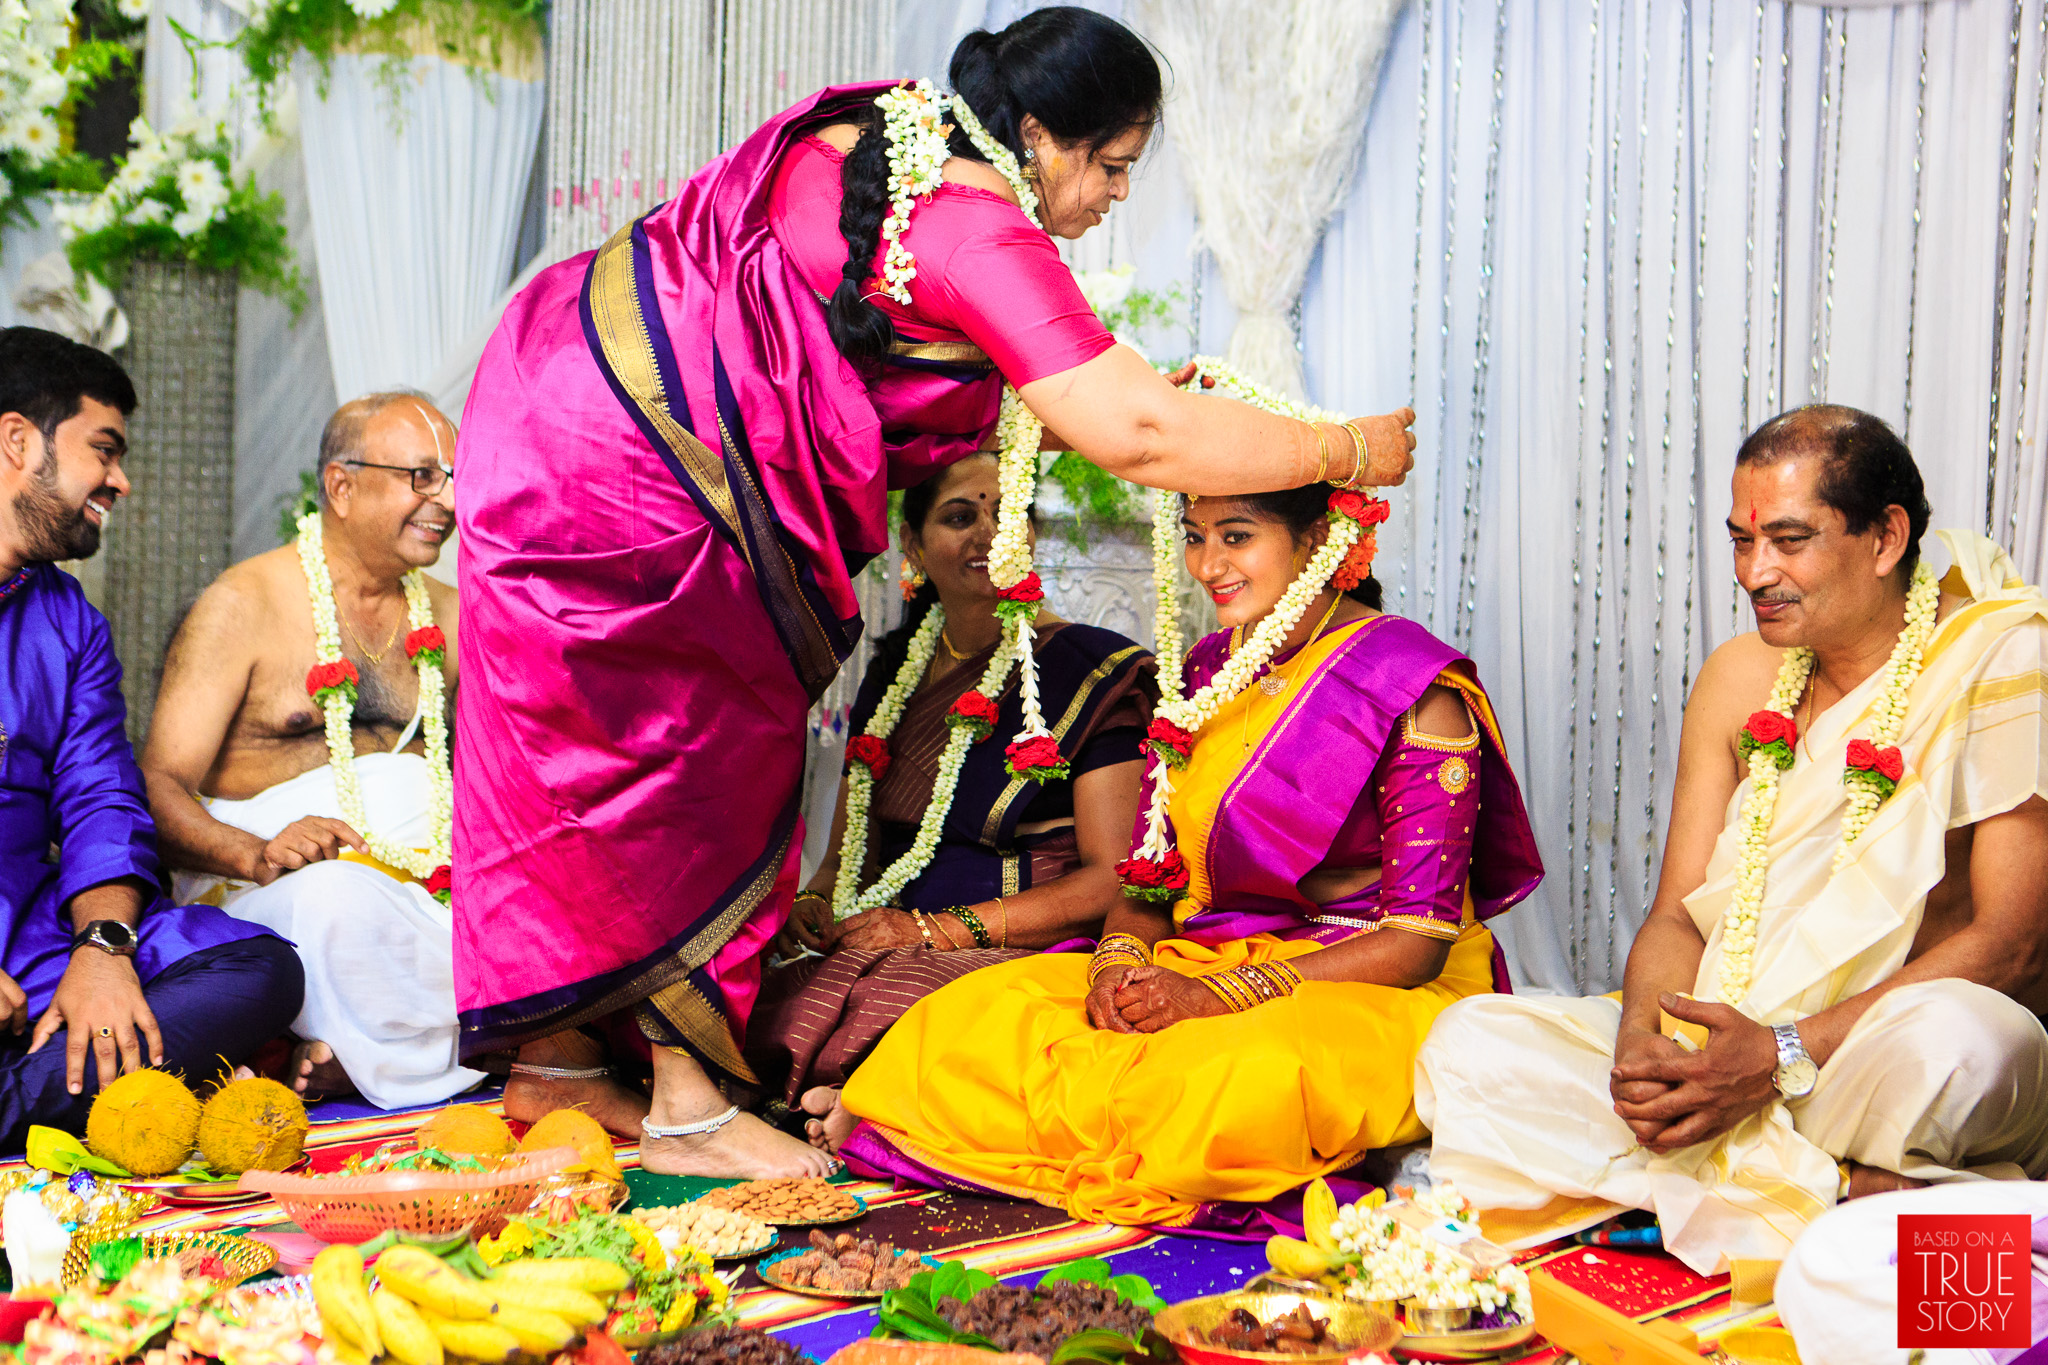 Tambrahm-Candid-Wedding-Photographers-Bangalore-0018.jpg